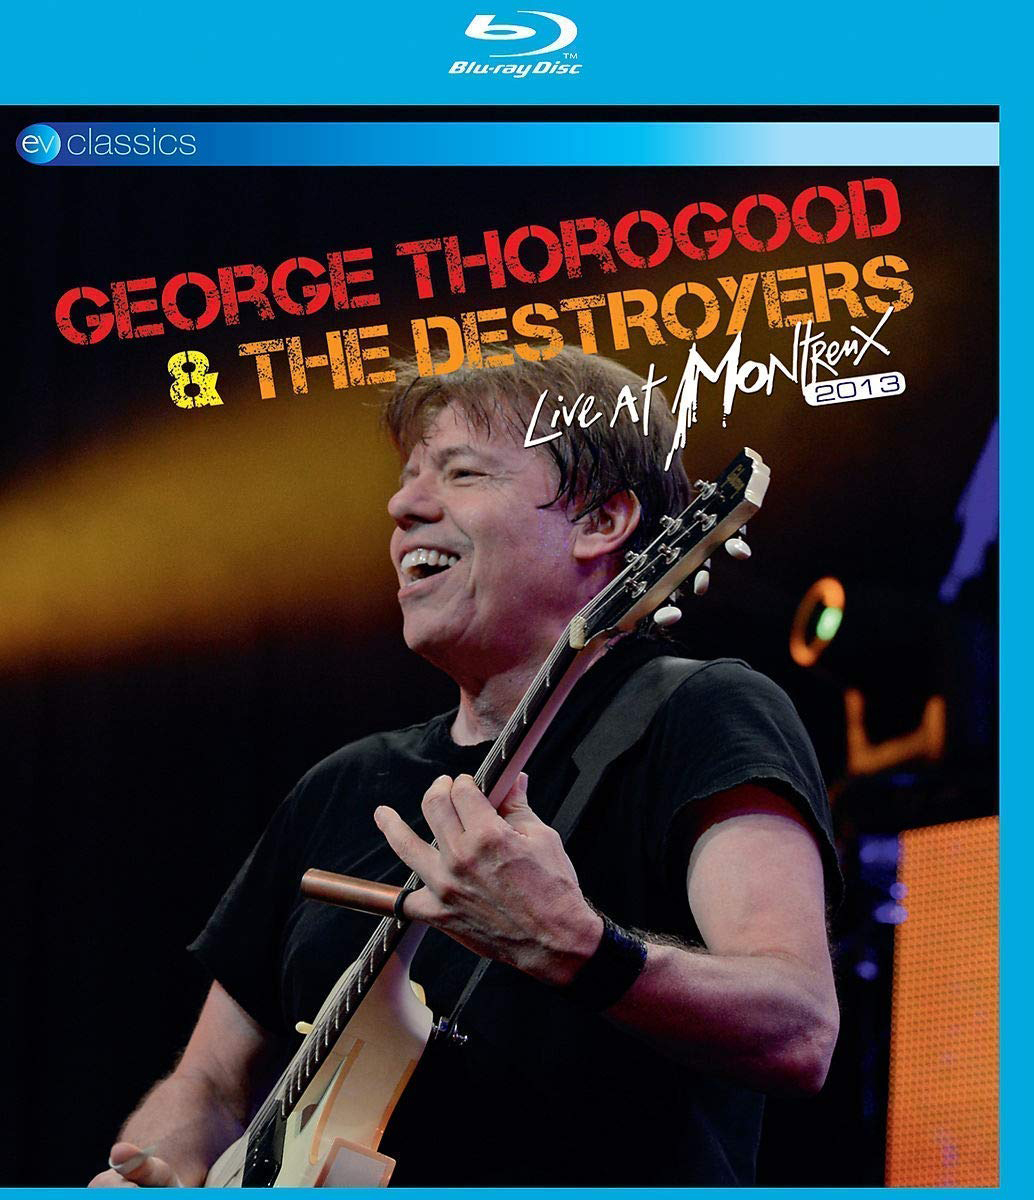 Джордж Торогуд George Thorogood. Live At Montreux 2013 (Blu-ray) bruce foxton live at the camden palace